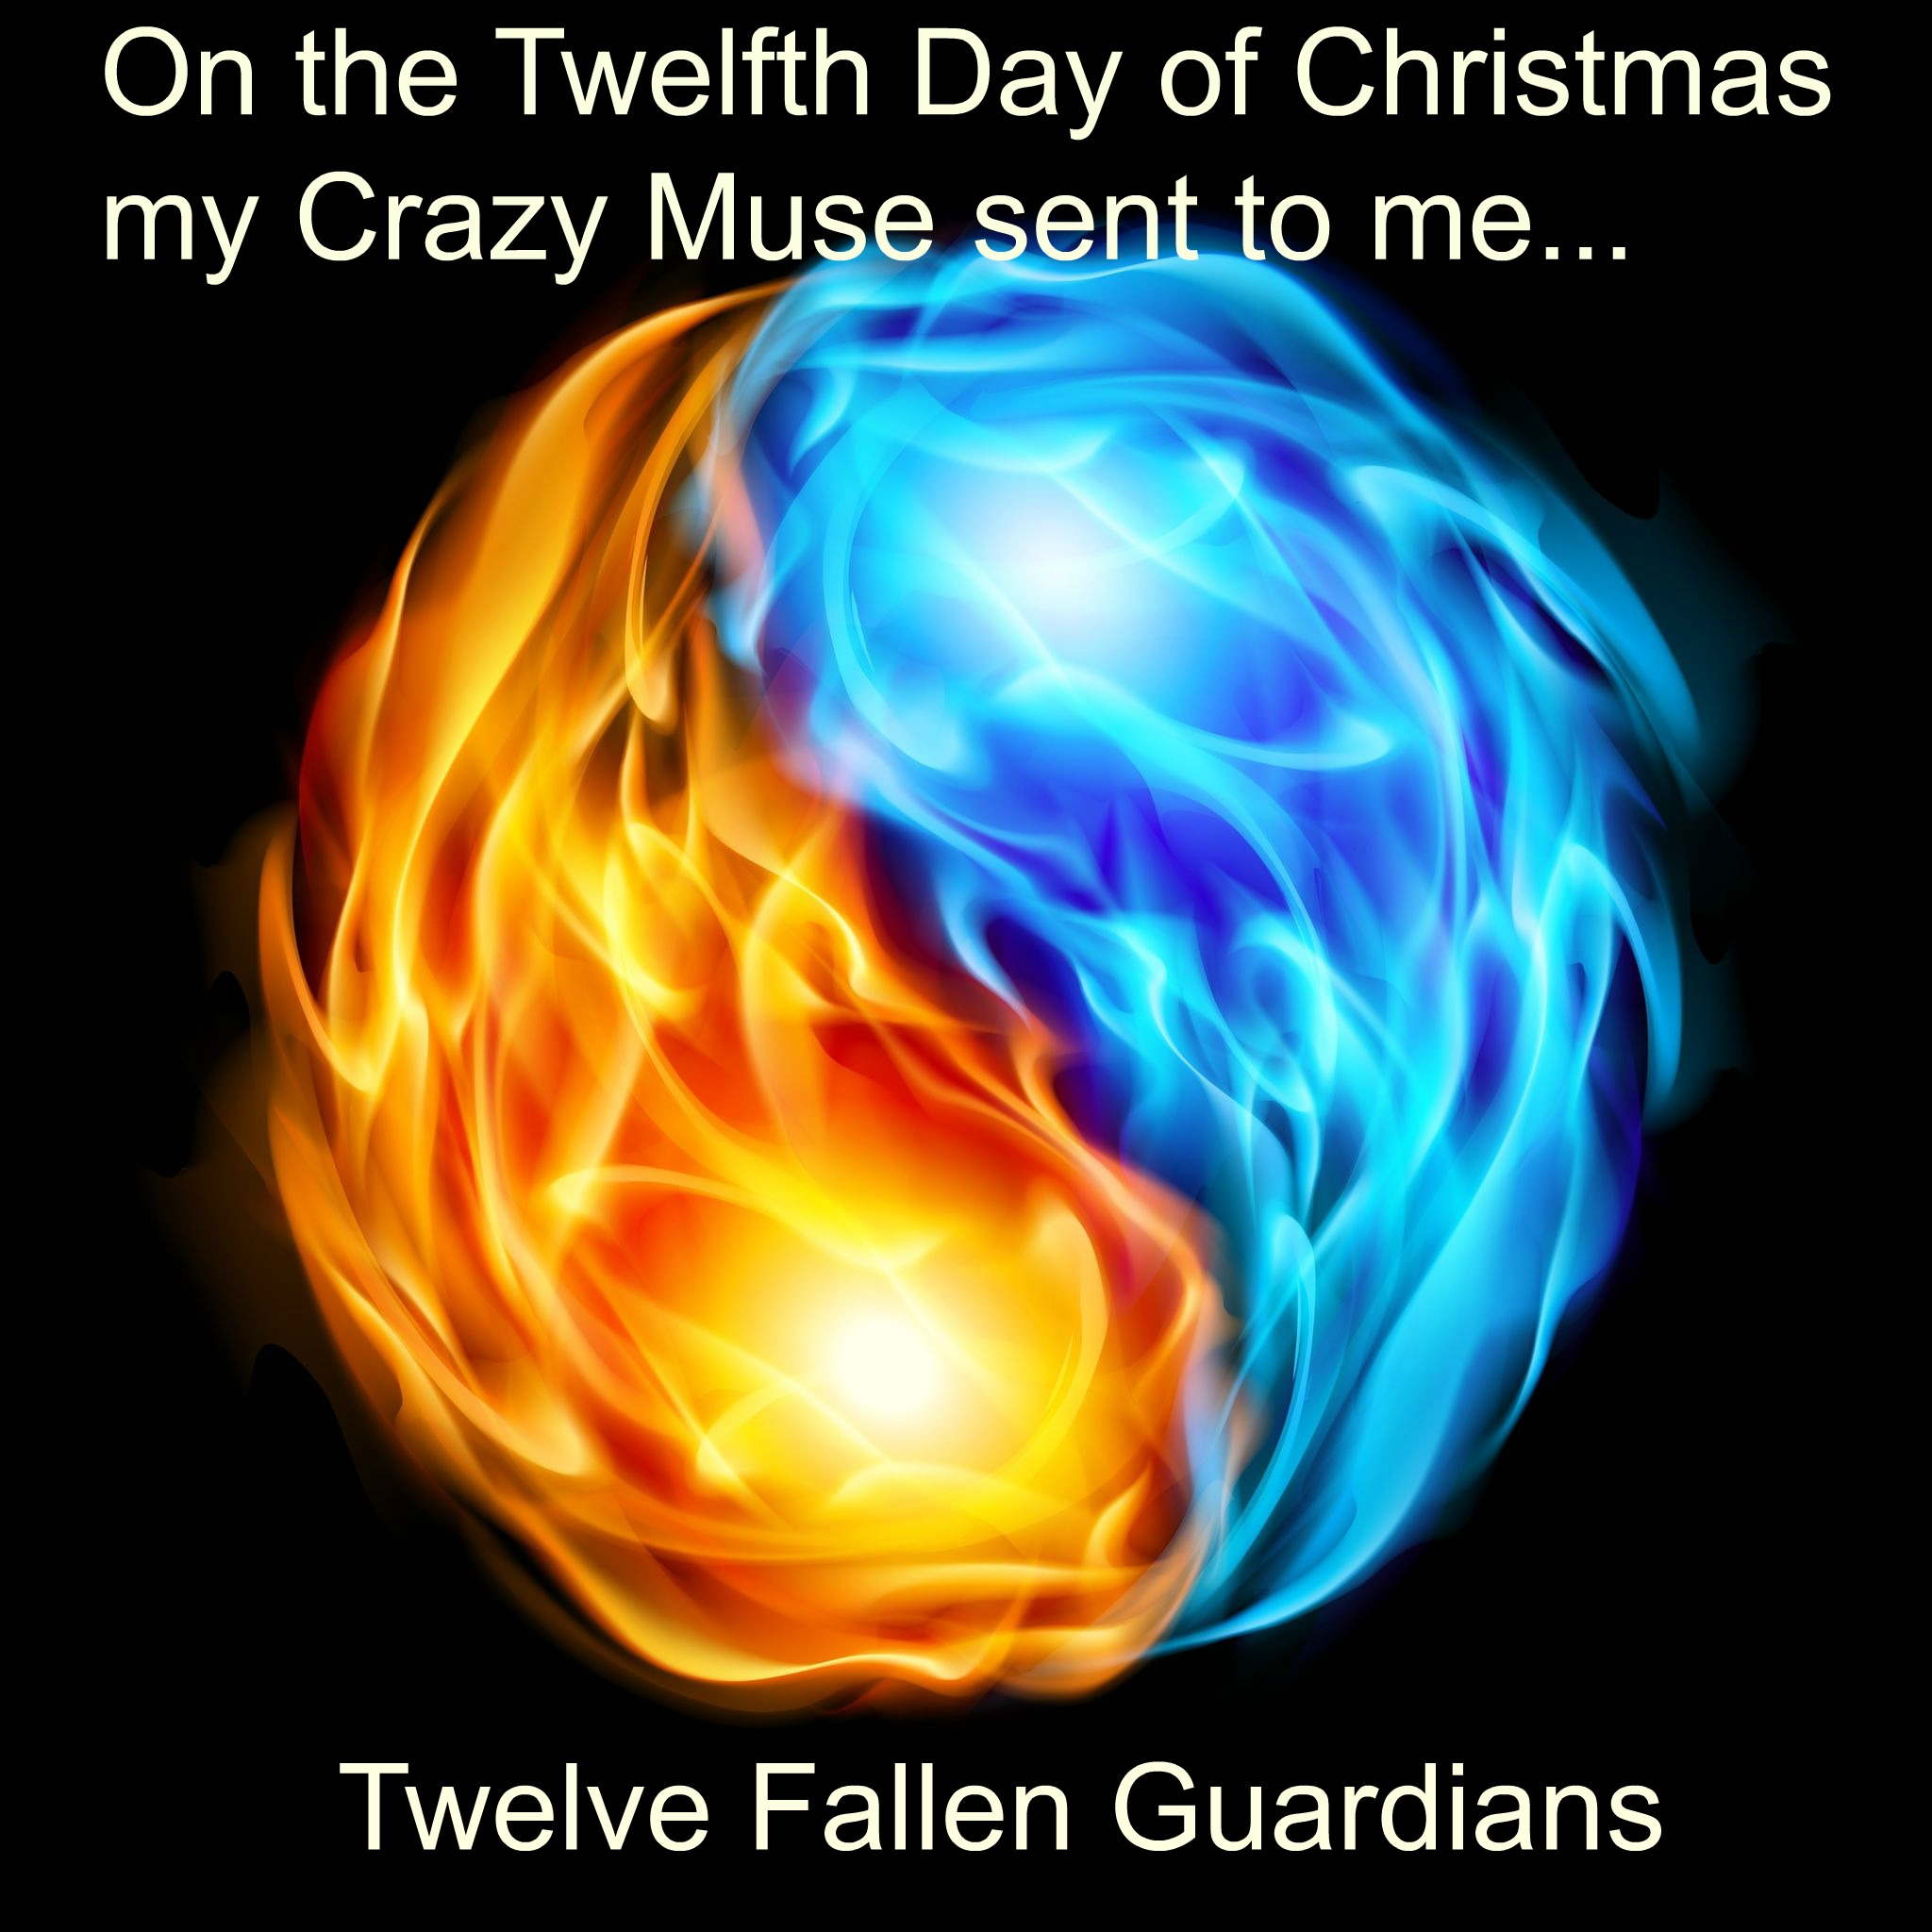 One the Twelfth Day of Christmas my Crazy Muse sent to me…